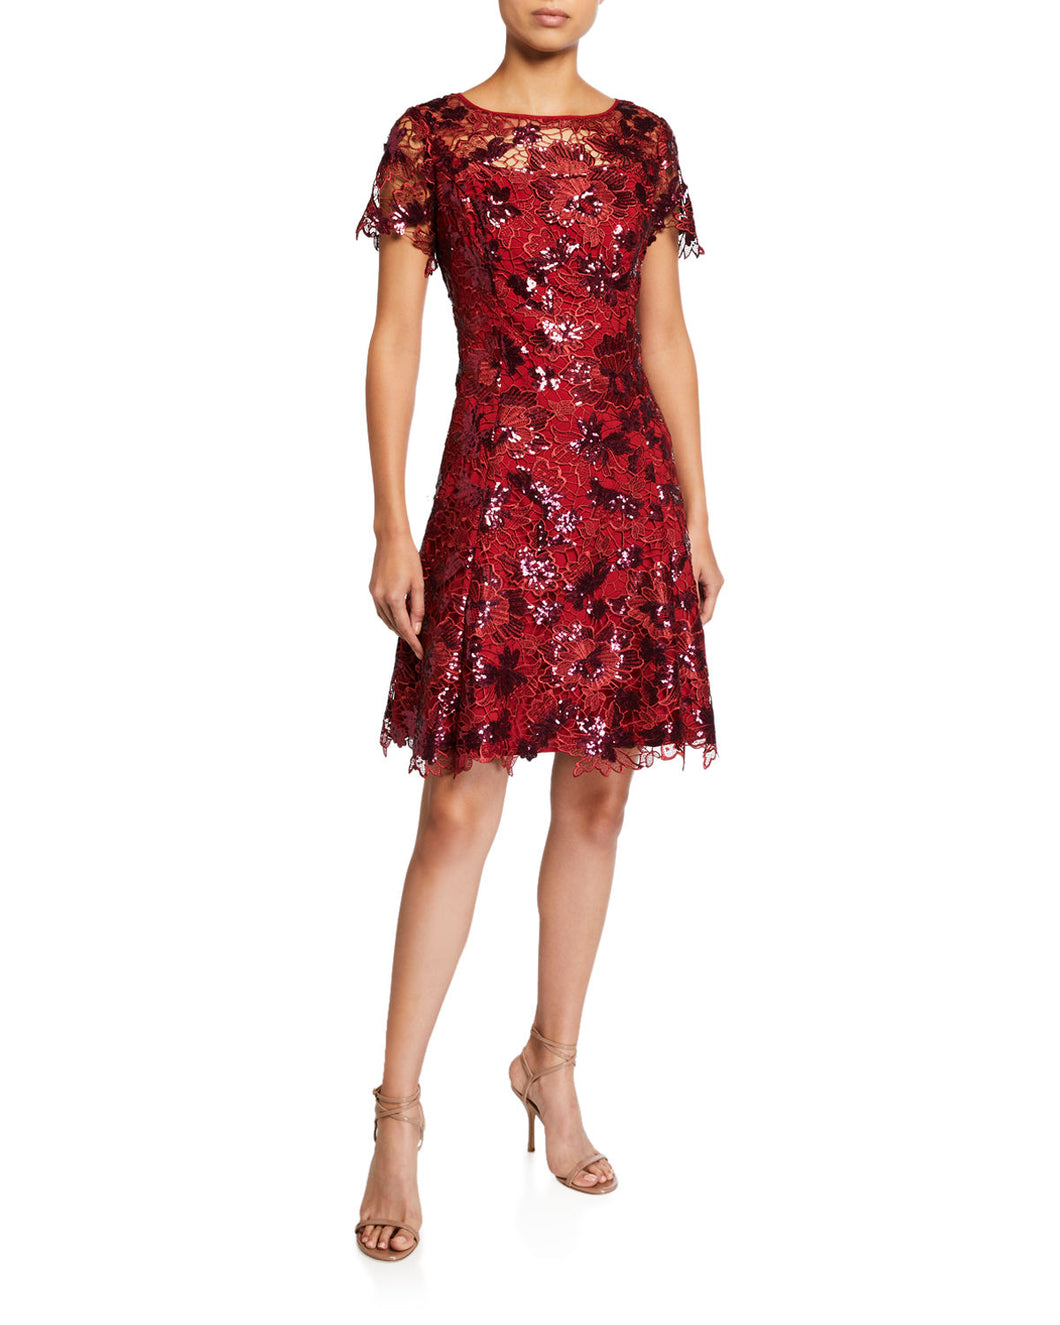 Sequin Lace Fit and Flare Dress Red - 1